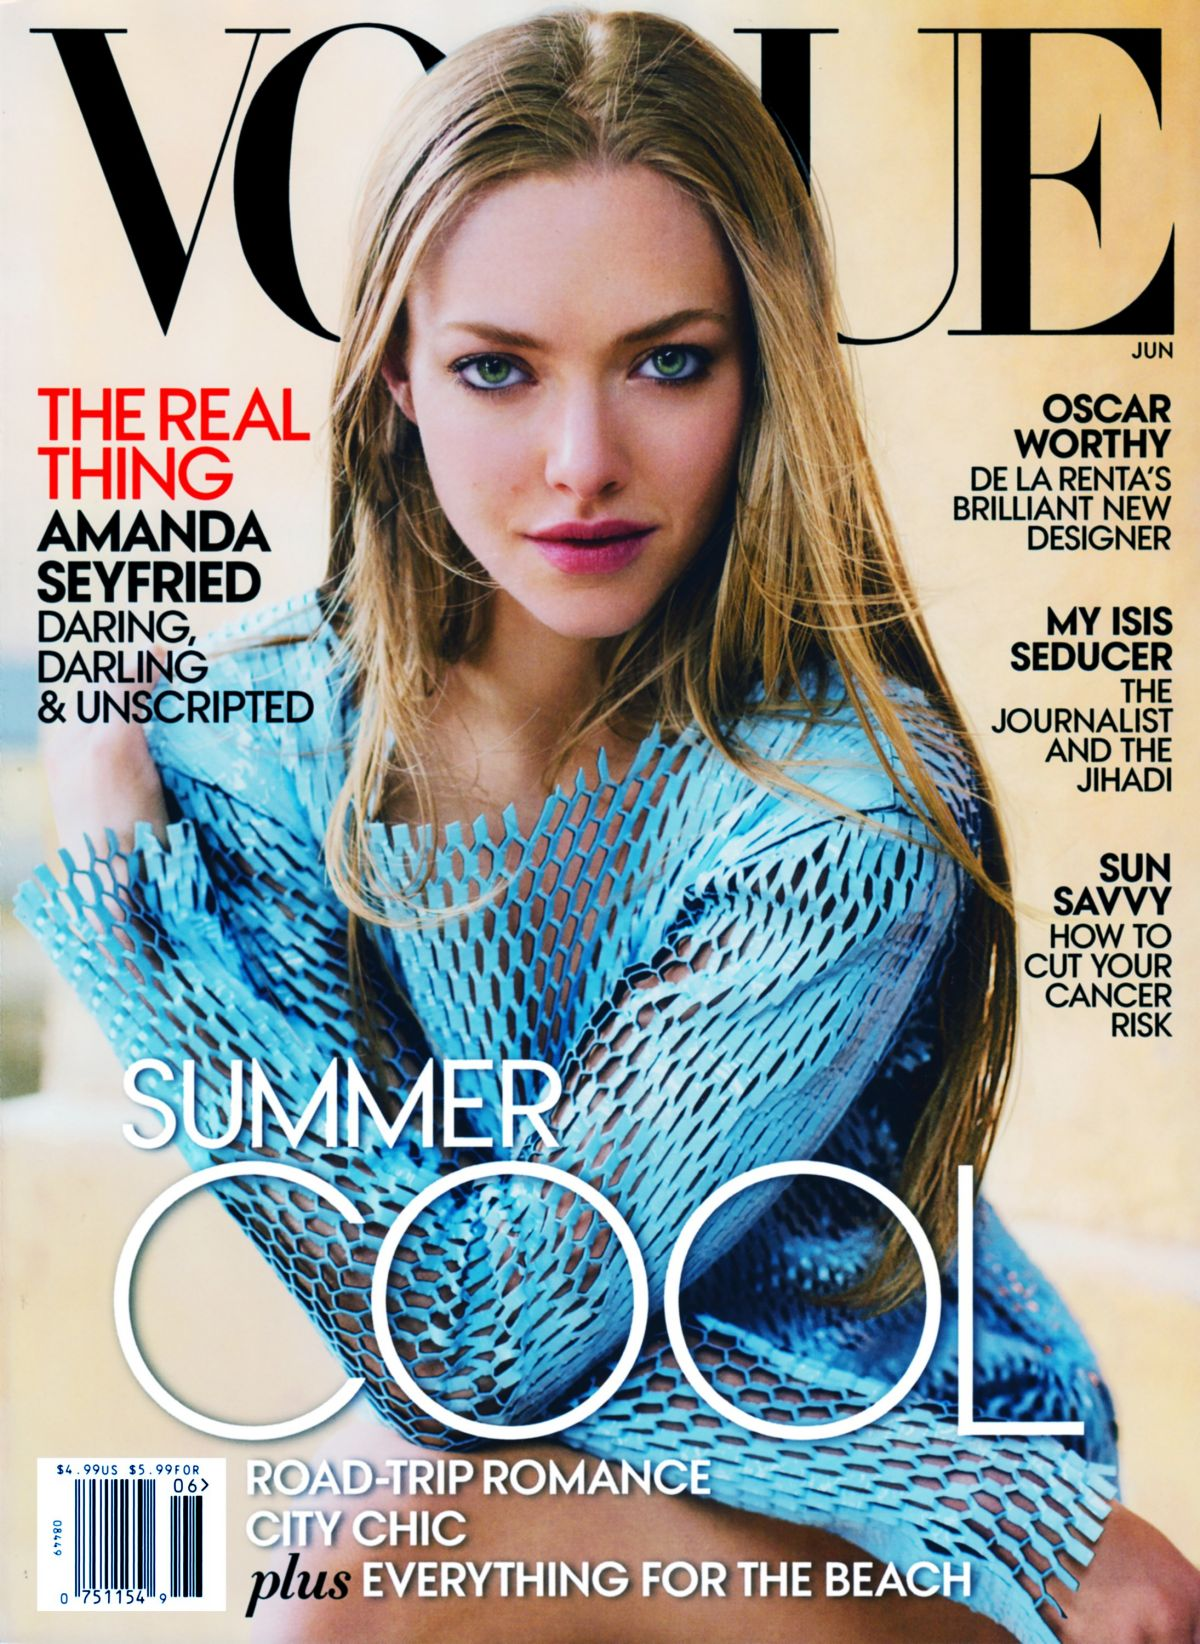 AMANDA SEYFRIED on the Cover of Vogue Magazine, June 2015 Issue